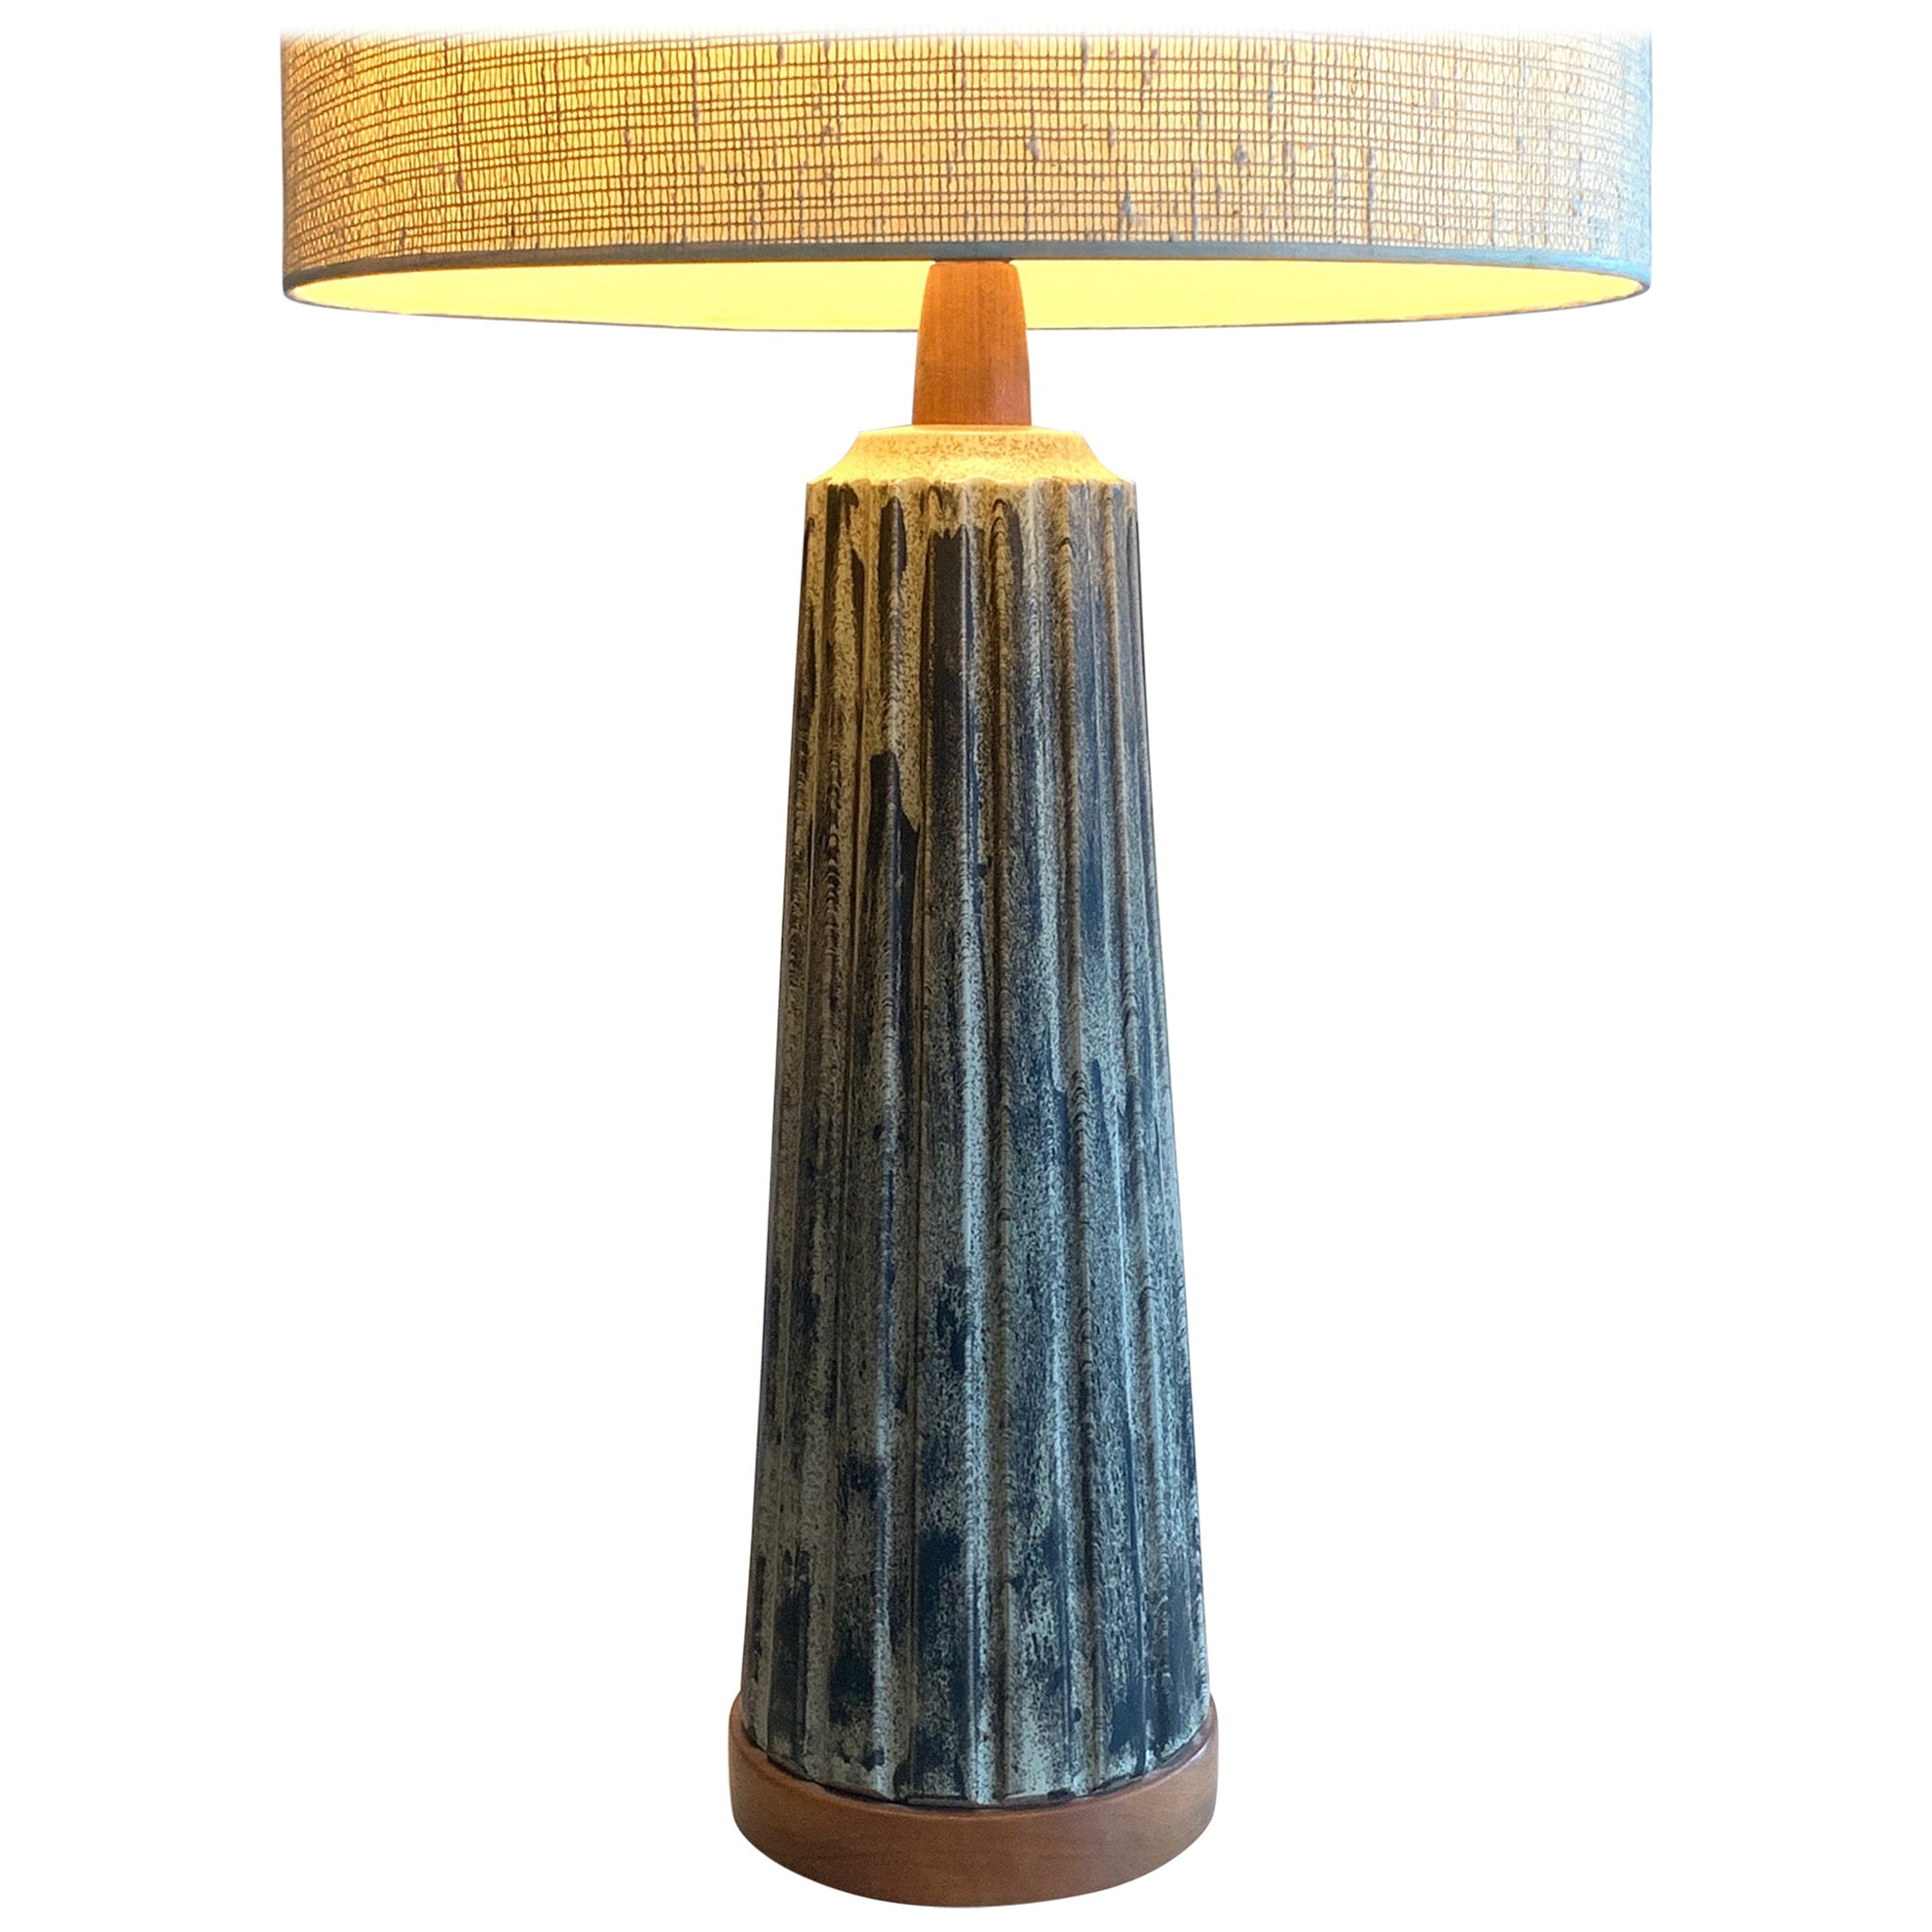 Unusual Martz Ceramic Lamp